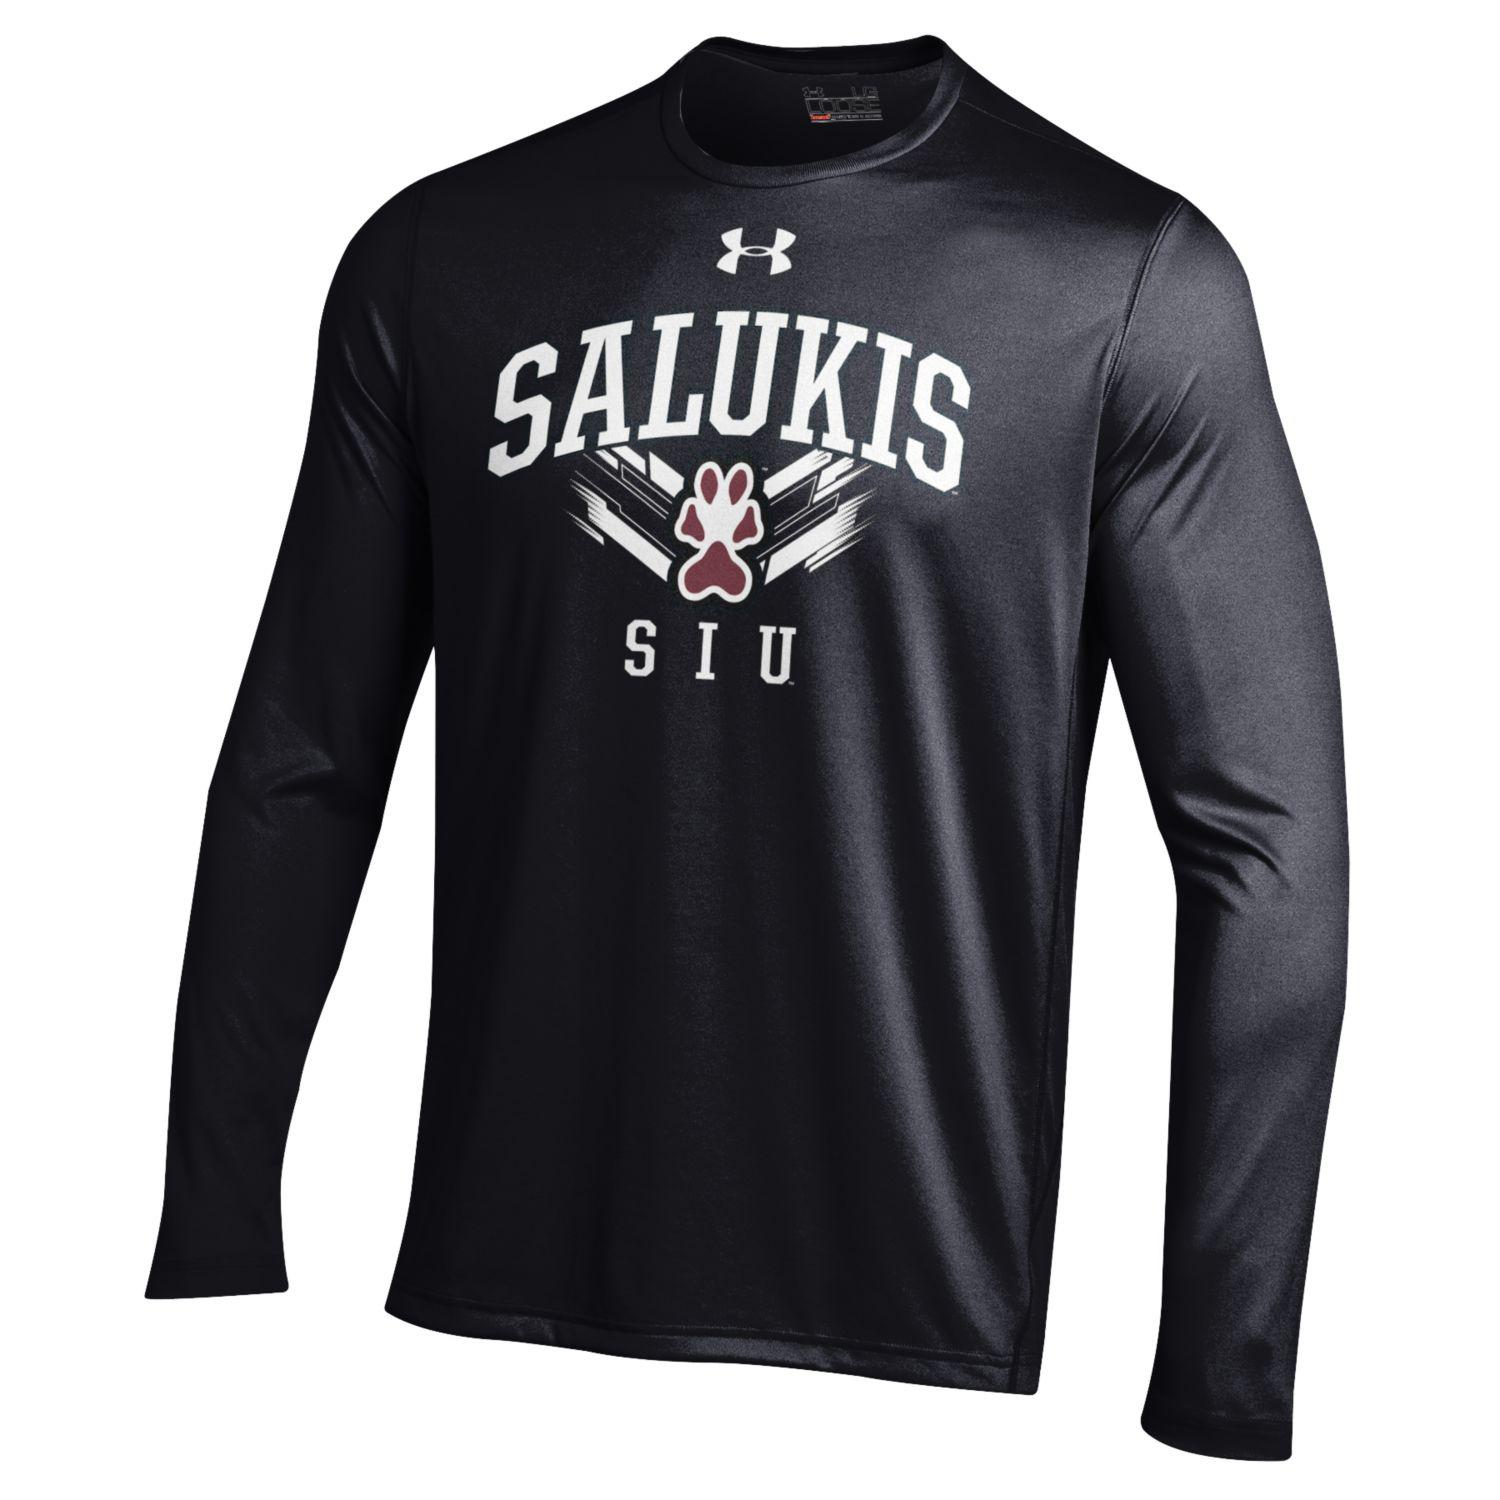 Image for the UNDER ARMOUR® SIU SALUKIS PERFORMANCE LONG SLEEVE BLACK T-SHIRT product